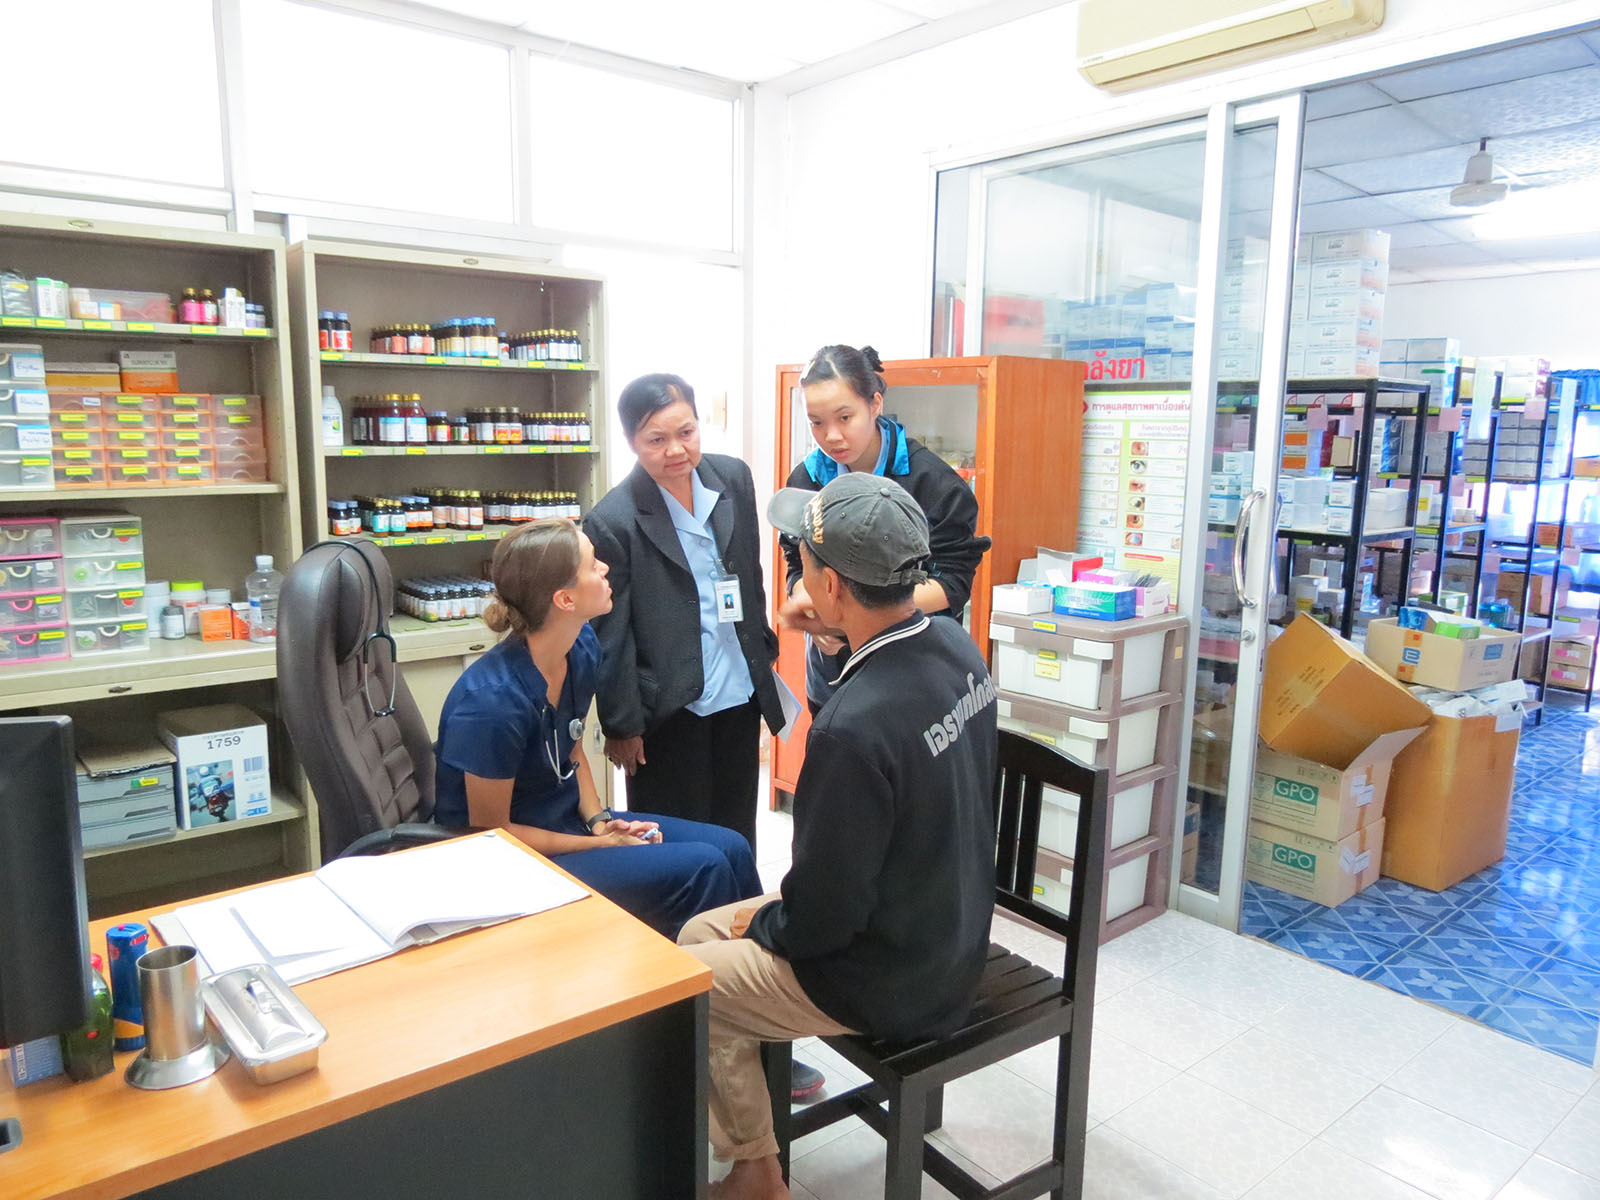 A U-M School of Nursing student cares for a patient in Thailand while a Thai colleague provides translation. U-M has longstanding ties with nursing programs in Thailand. Image credit: U-M School of Nursing